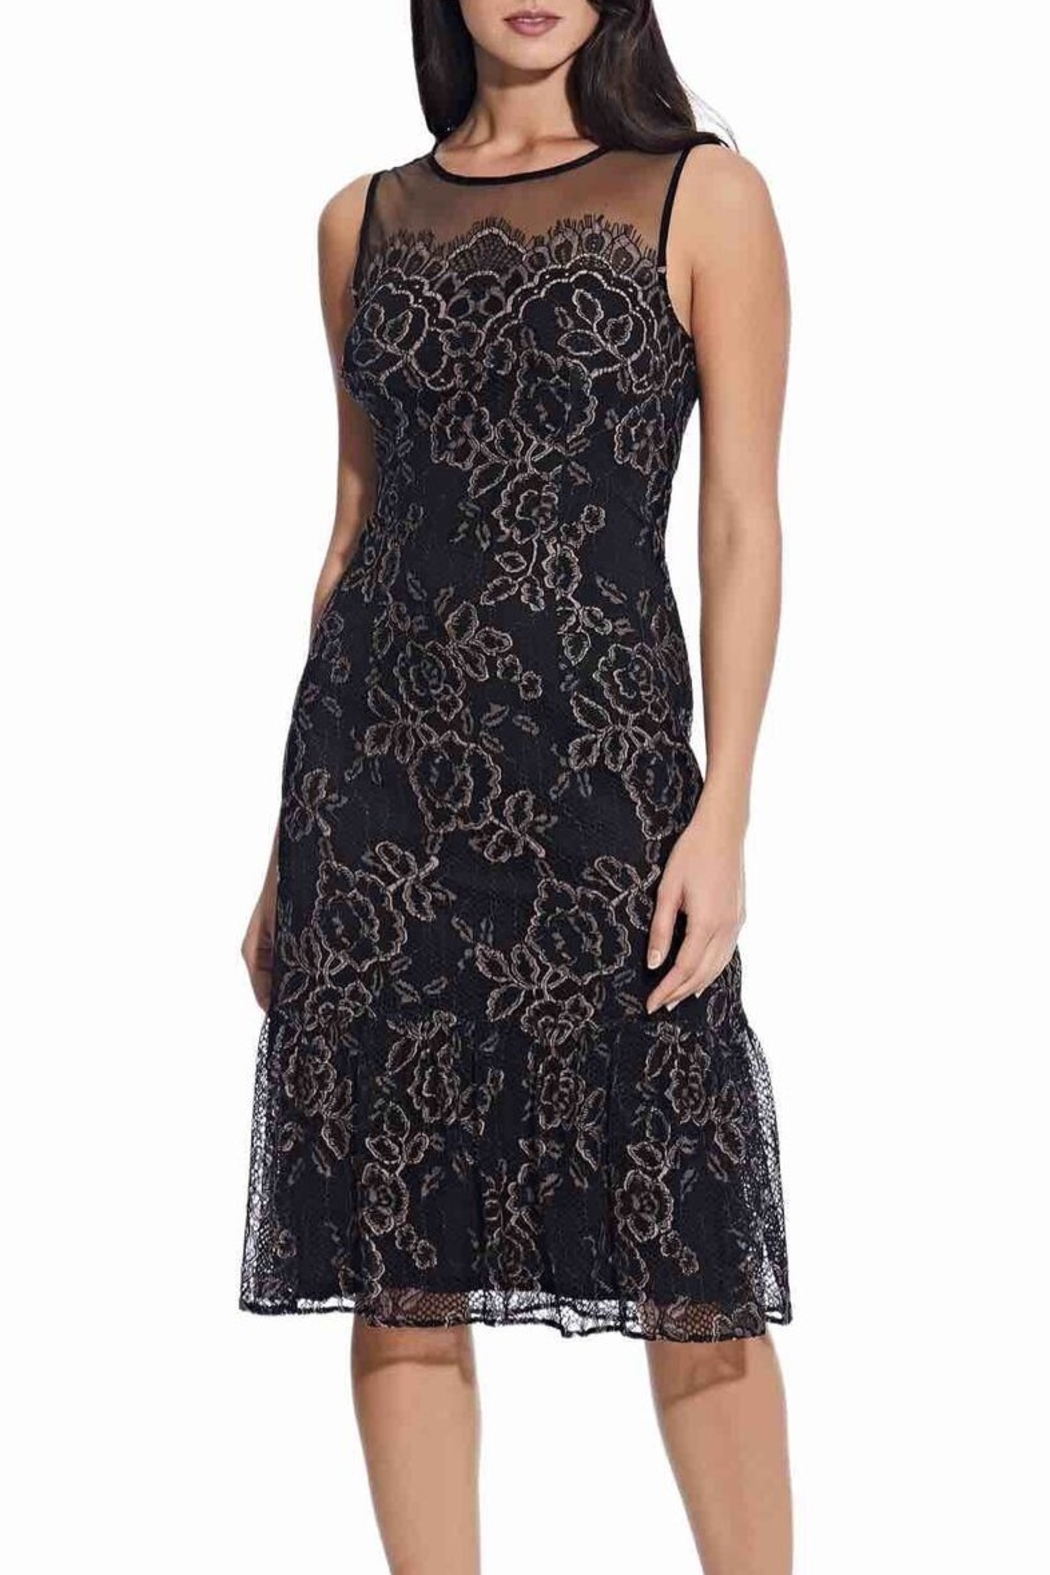 Adrianna Papell Maria Lace Midi Dress - Front Cropped Image